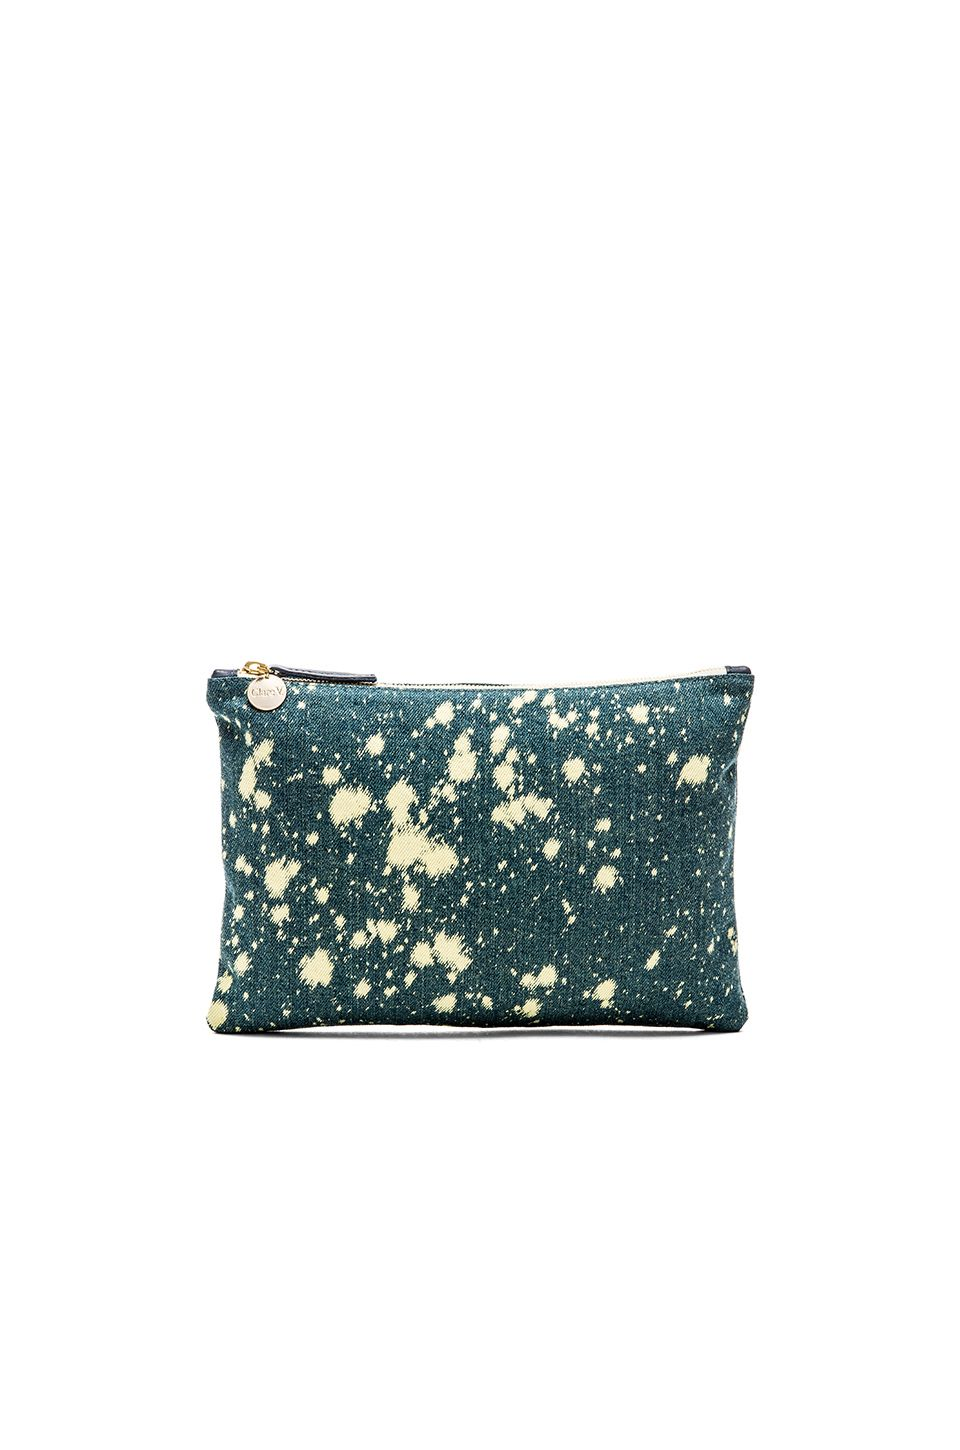 Clare V. Flat Pouch